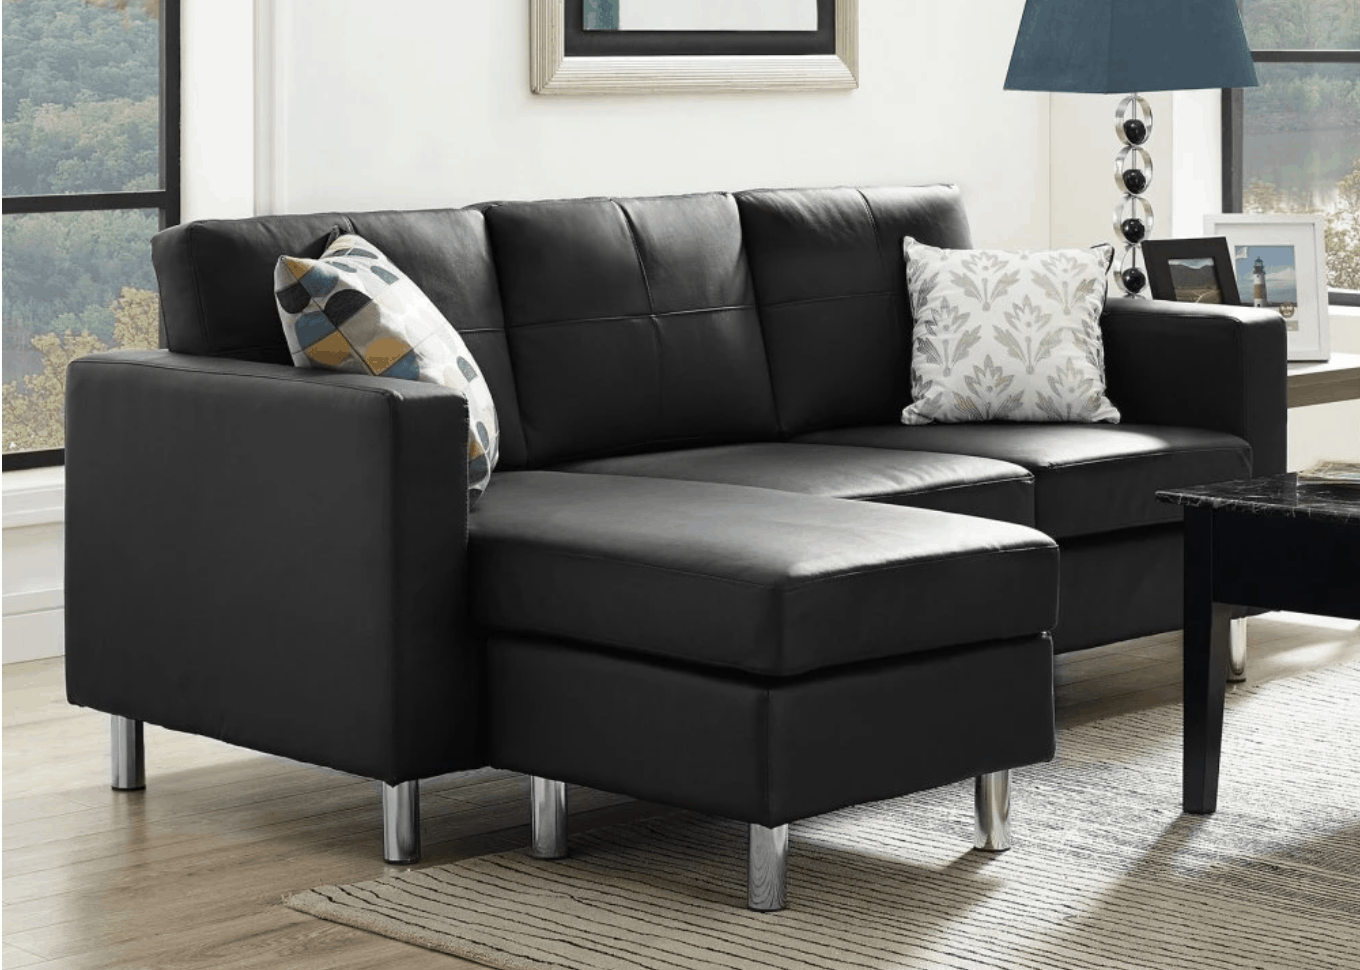 E Saving Black Sectional Sofa For Small Es